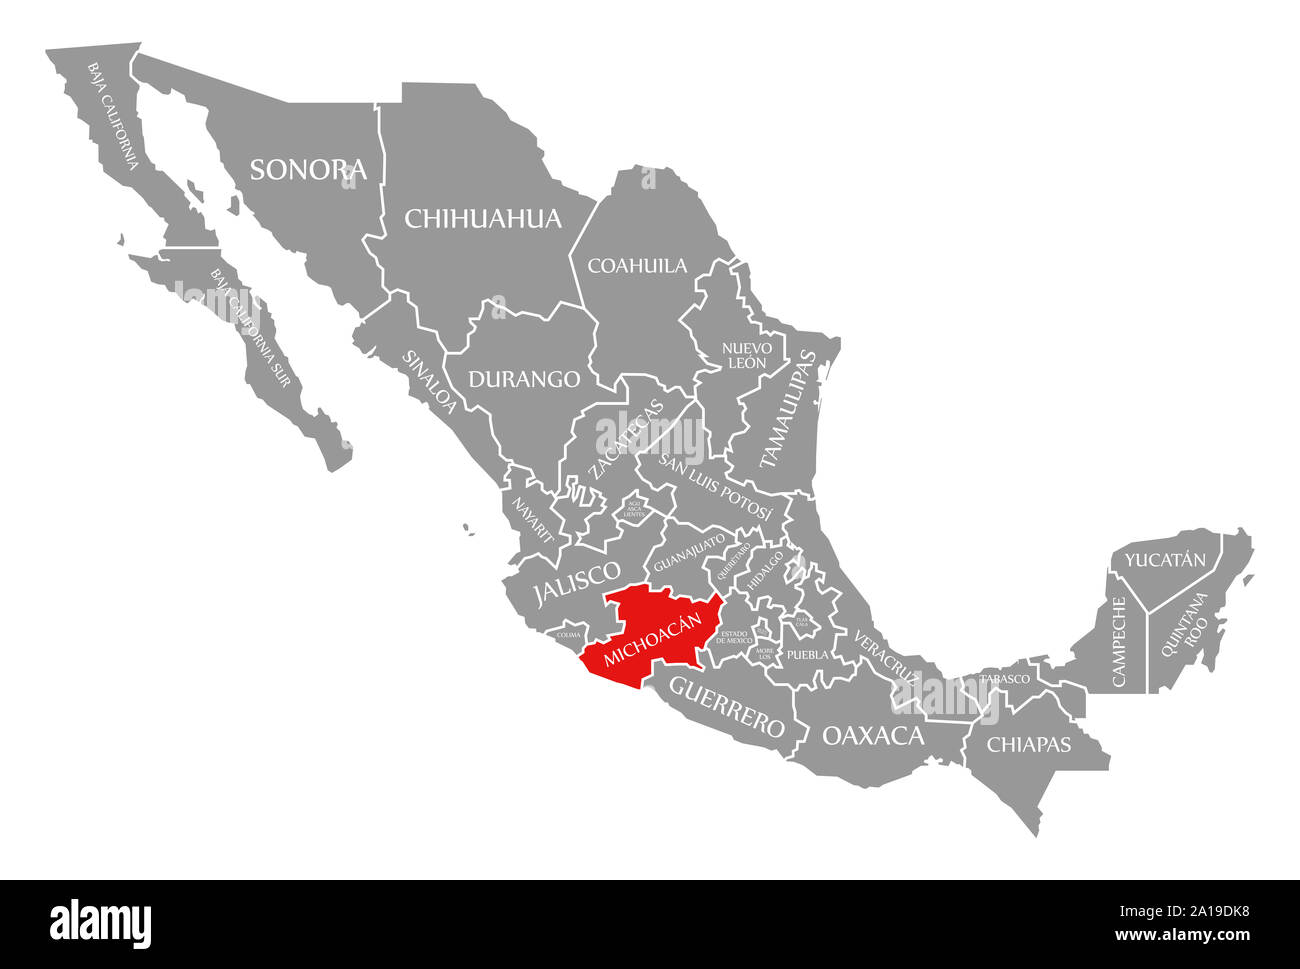 Michoacan Mexico Cut Out Stock Images & Pictures - Alamy